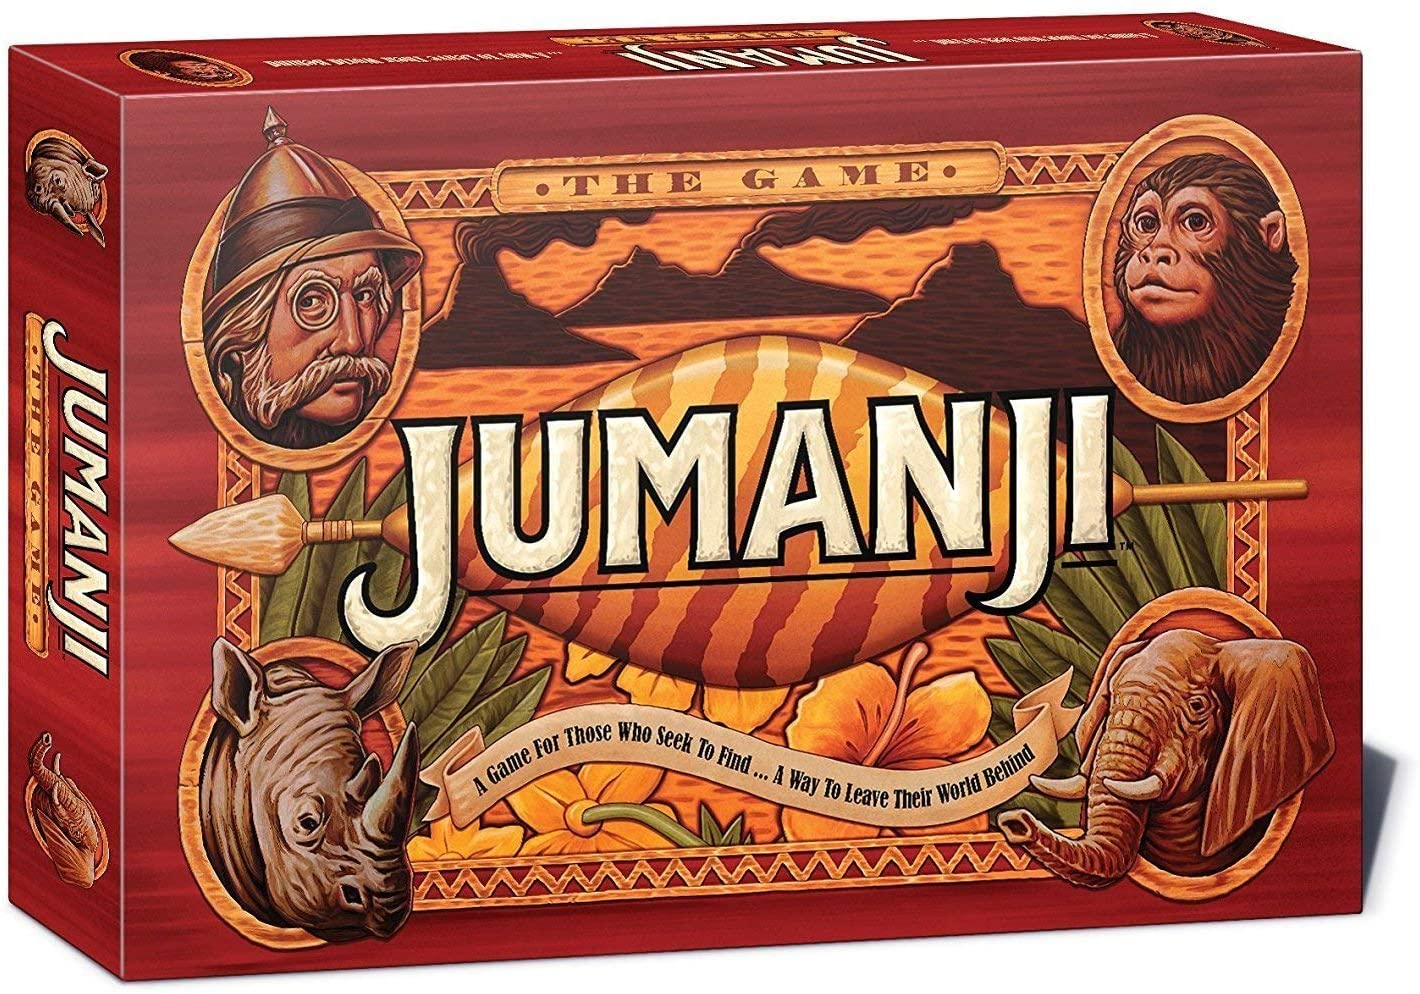 20 Facts You Probably Didn't Know About Jumanji